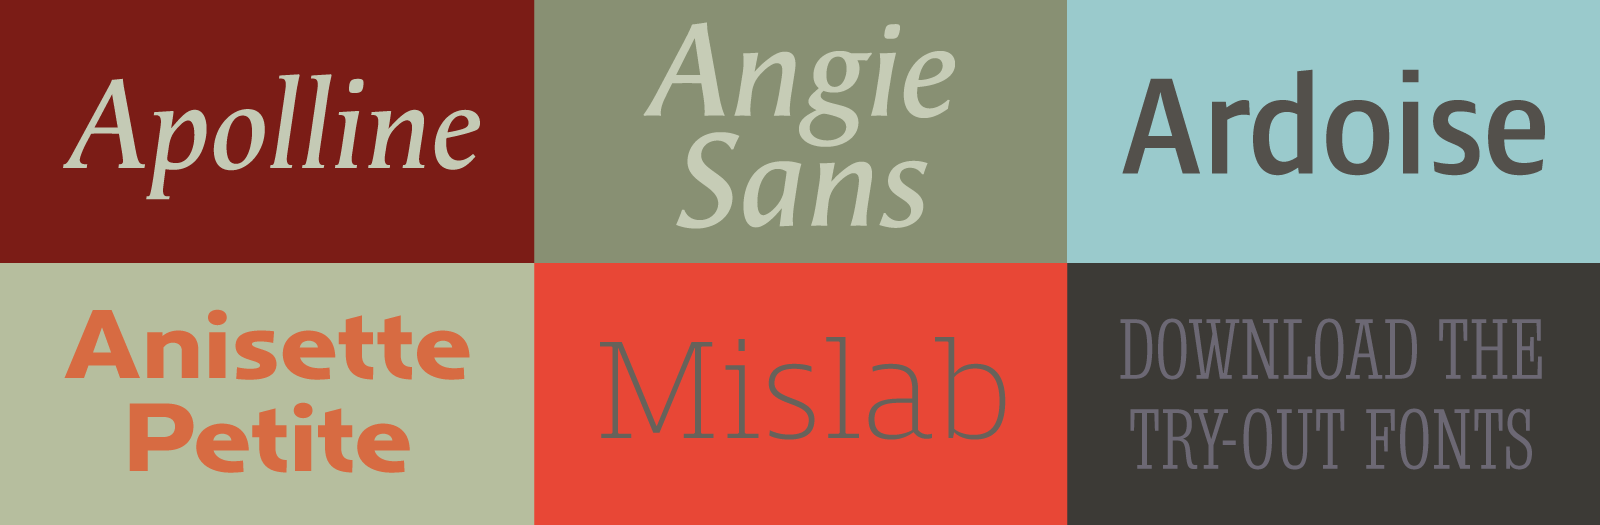 Introducing Try-out fonts: Angie Sans, Anisette Petite, Apolline, Ardoise, Mislab